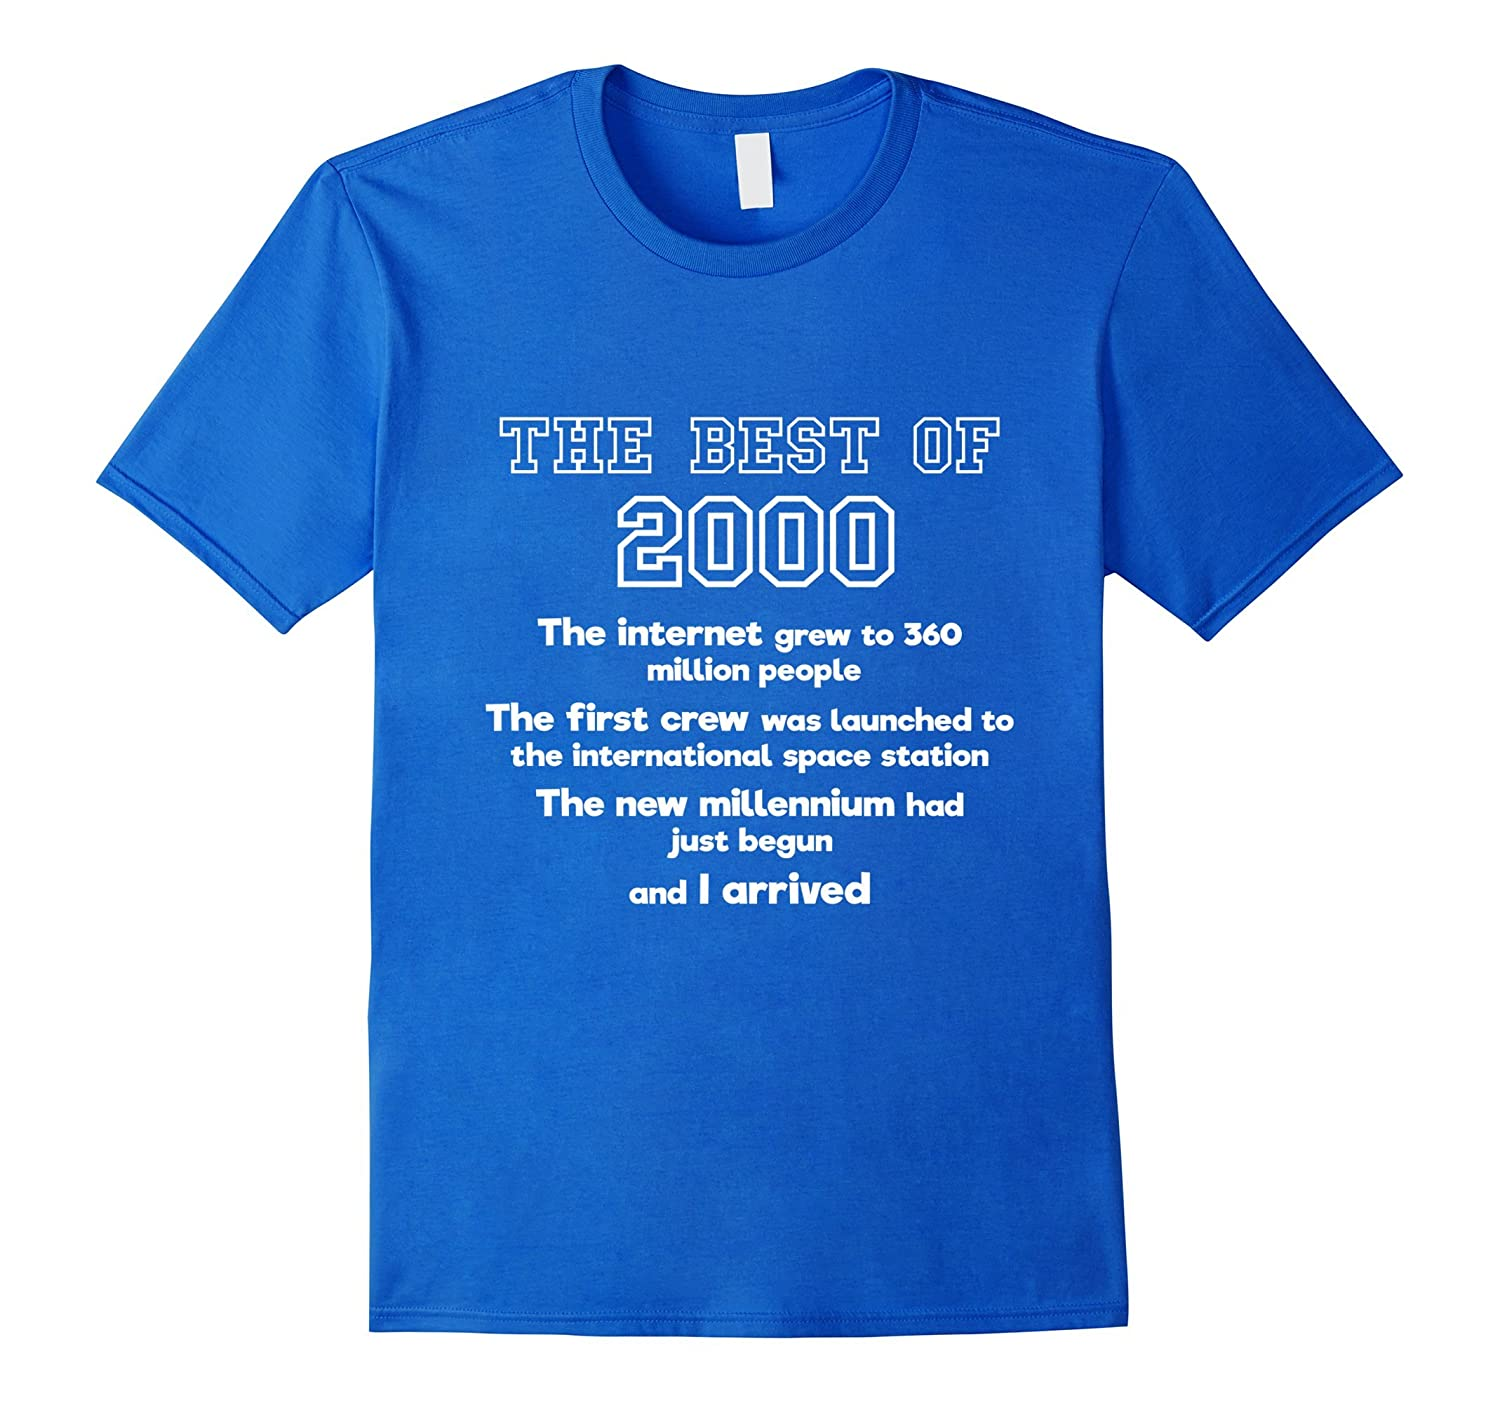 2000 17th Birthday T Shirt Gift For 17 Year Old Boys